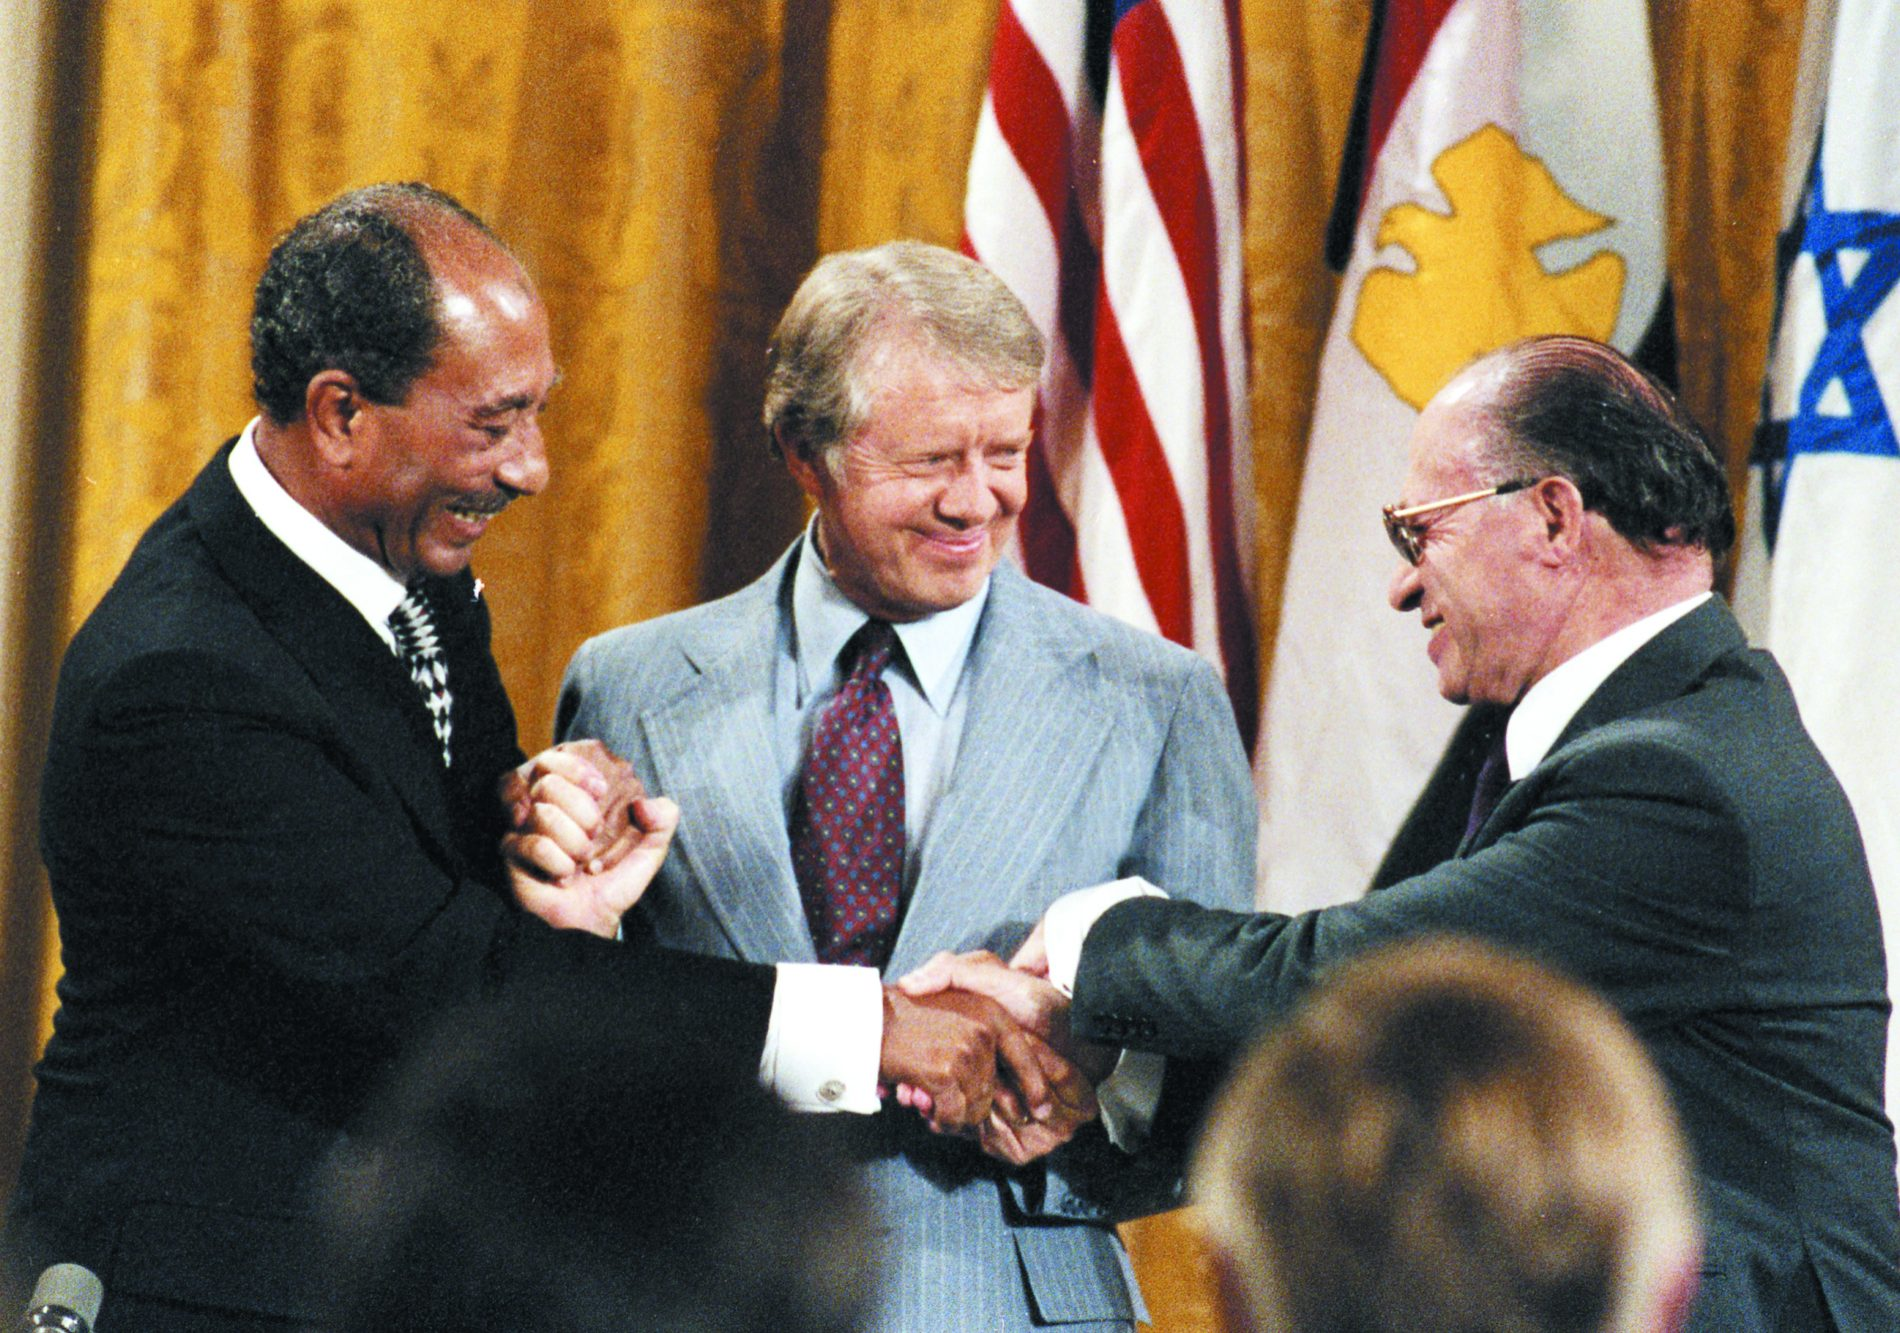 Egyptian President Anwar al-Sadat, left, and Israeli Prime Minister Menachem Begin, right, shake hands after signing the Camp David Accords 40 years ago at the White House, with U.S. President Jimmy Carter as the broker who signed the historic accord as a witness.